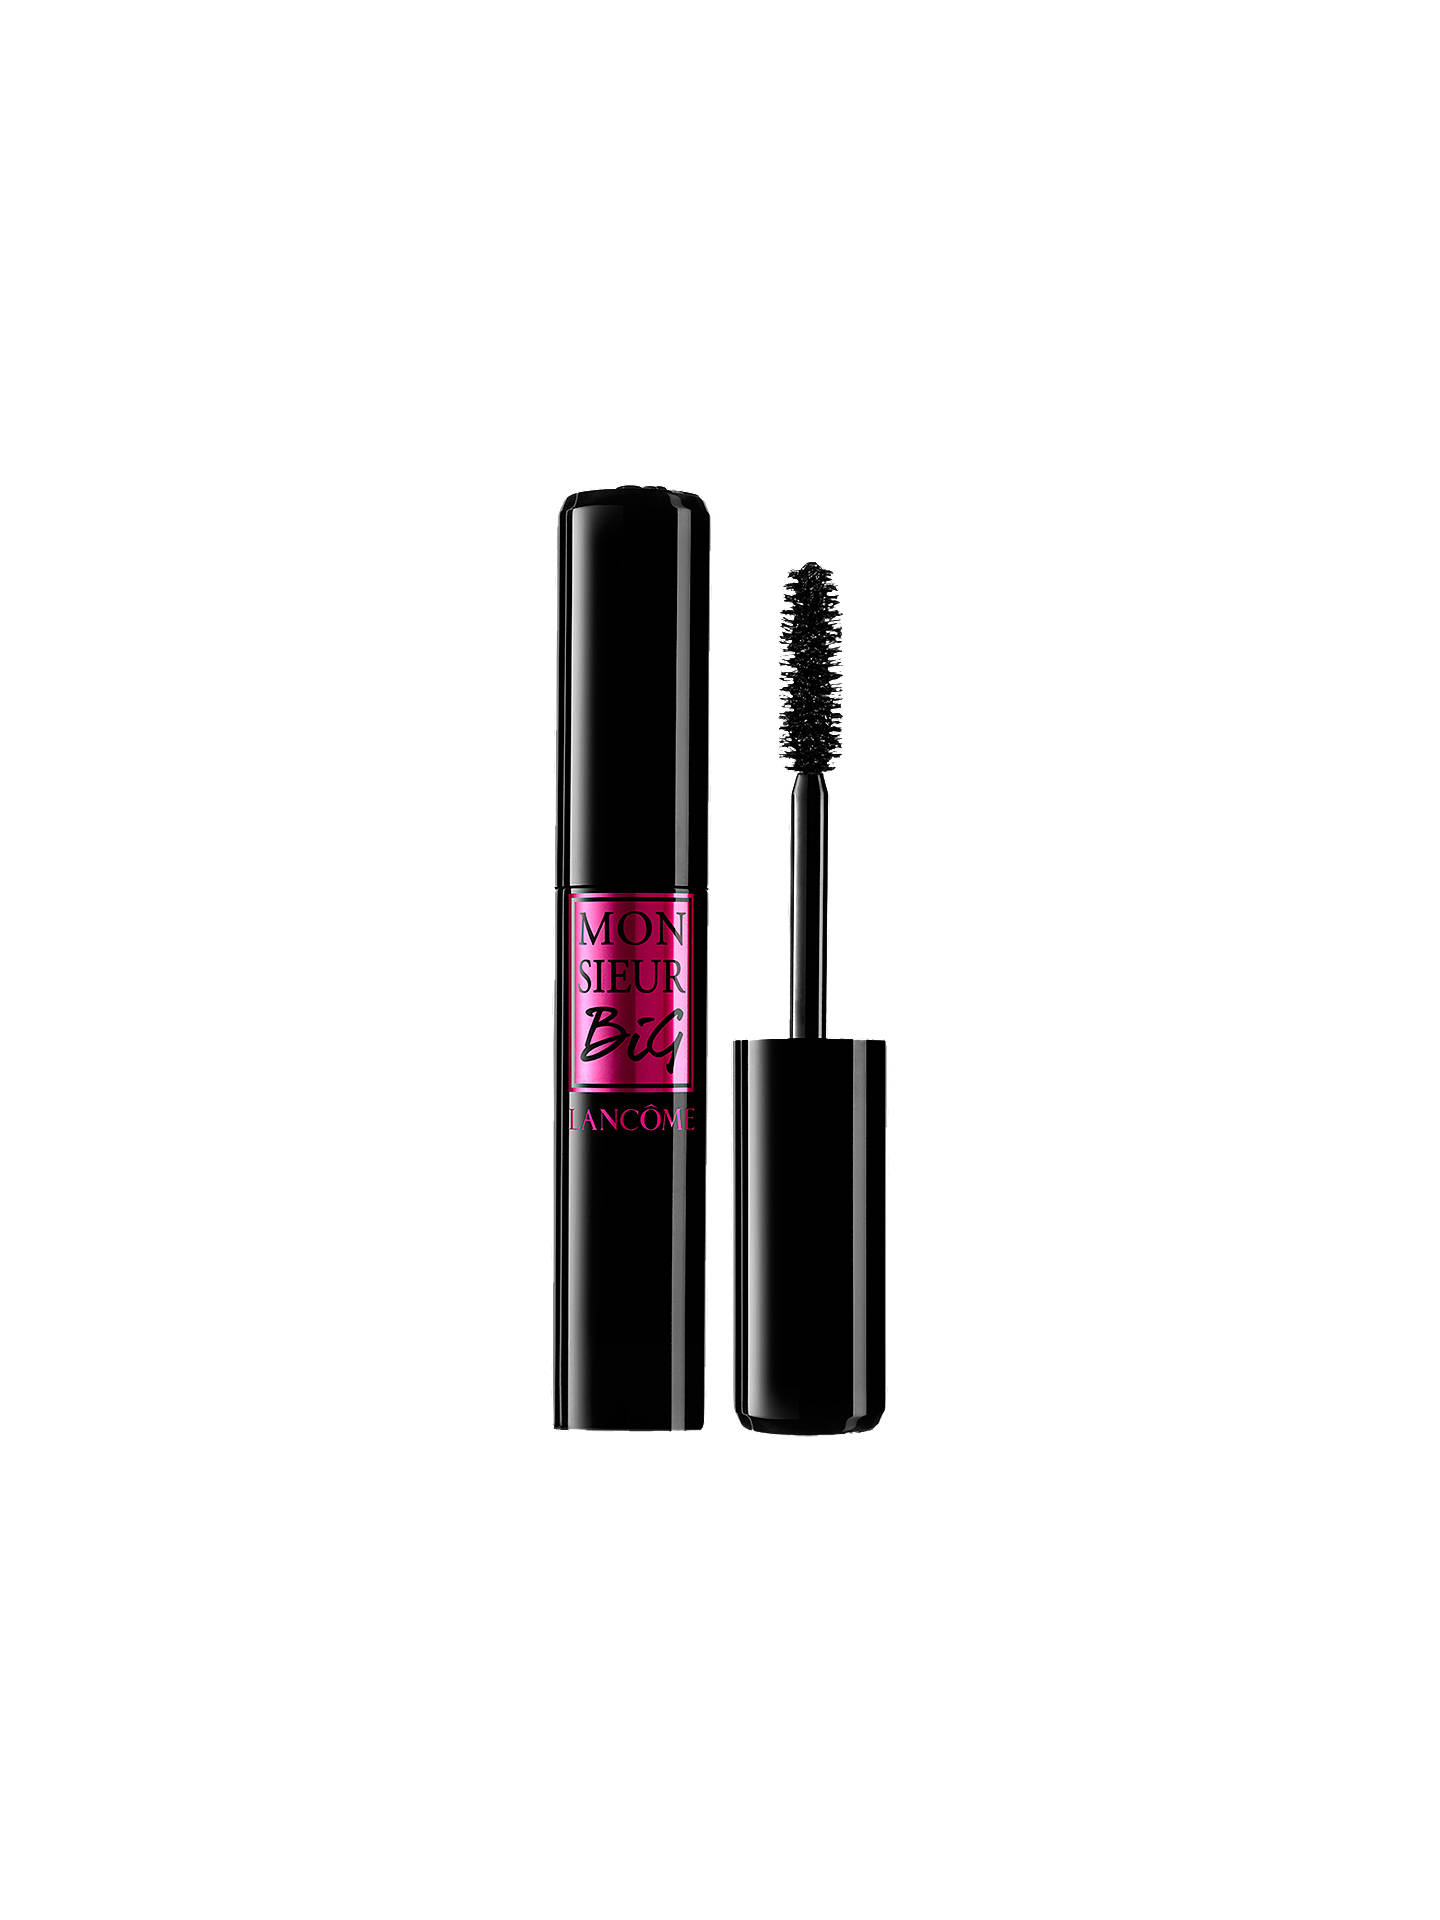 7ae0c02e9f0 Buy Lancôme Monsieur Big Mascara, 01 Big Is The New Black Online at  johnlewis.